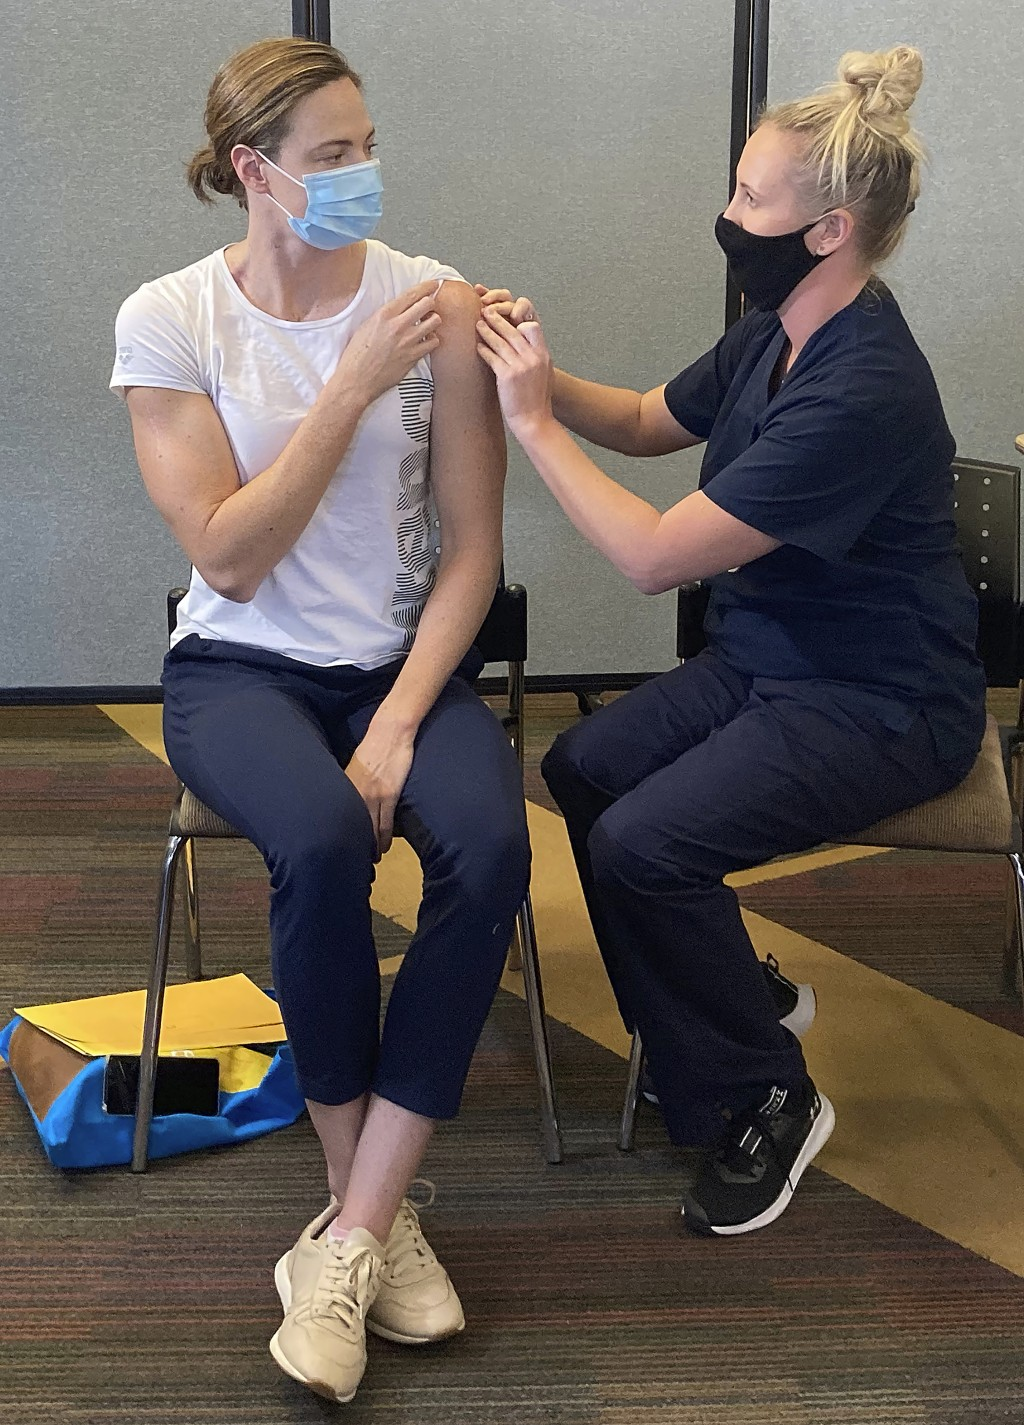 Swimmer Cate Campbell receives a Pfizer COVID-19 vaccination at the Queensland Academy of Sport in Brisbane, Australia, Monday, May 10, 2021. The Aust...